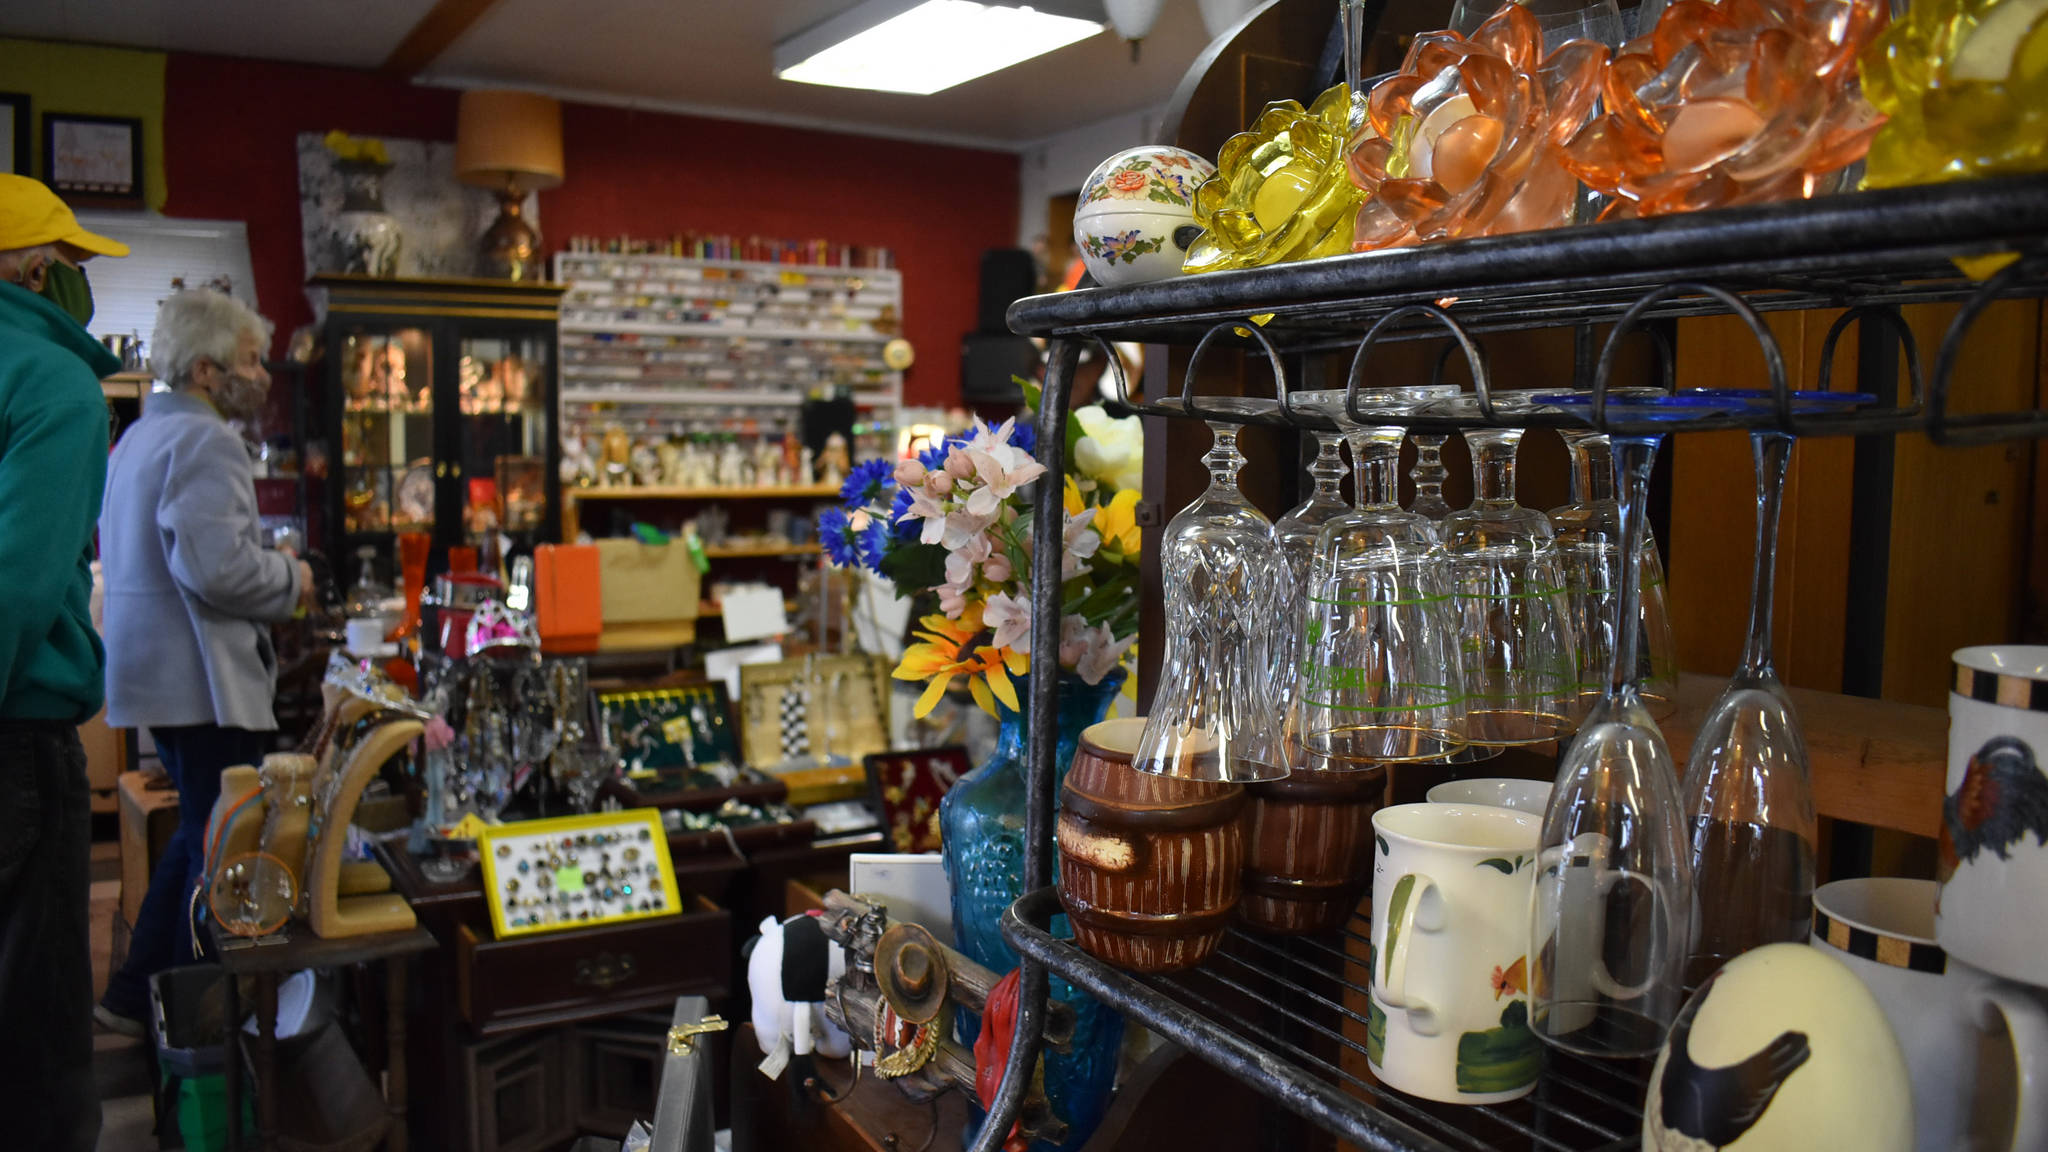 Ma & Pa's Memory Lane owners say their shop is meant to be a place where anyone can come in and find nice, quality items and afford them too. (Emelie Peacock/Hope Standard)